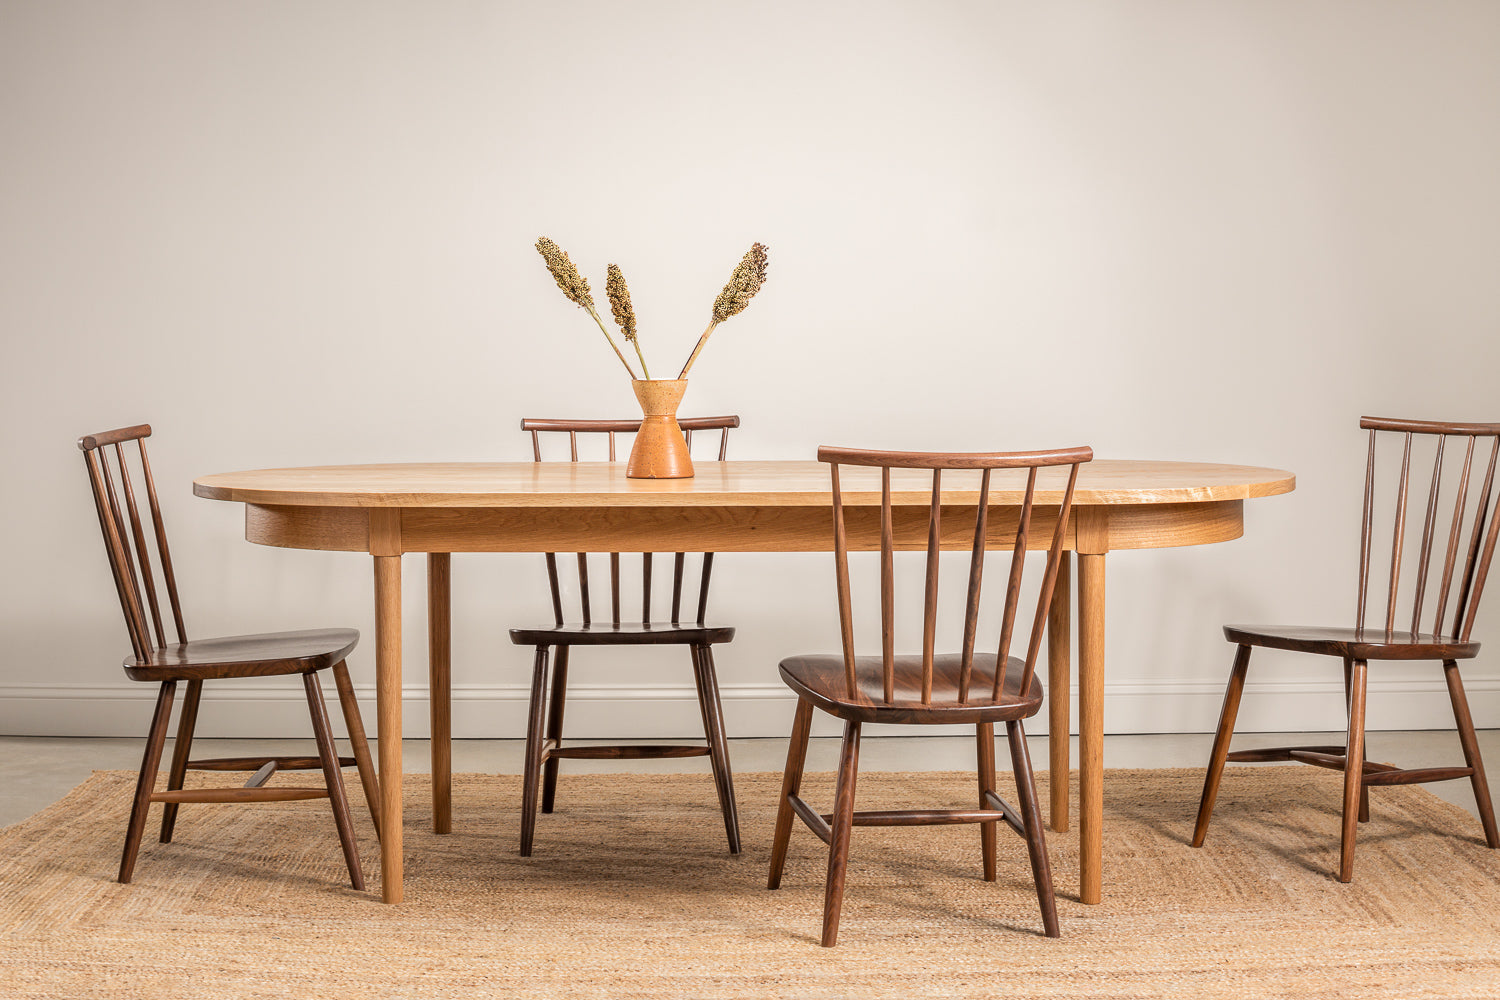 Highland cherry solid wood oval dining table from Chilton Furniture.